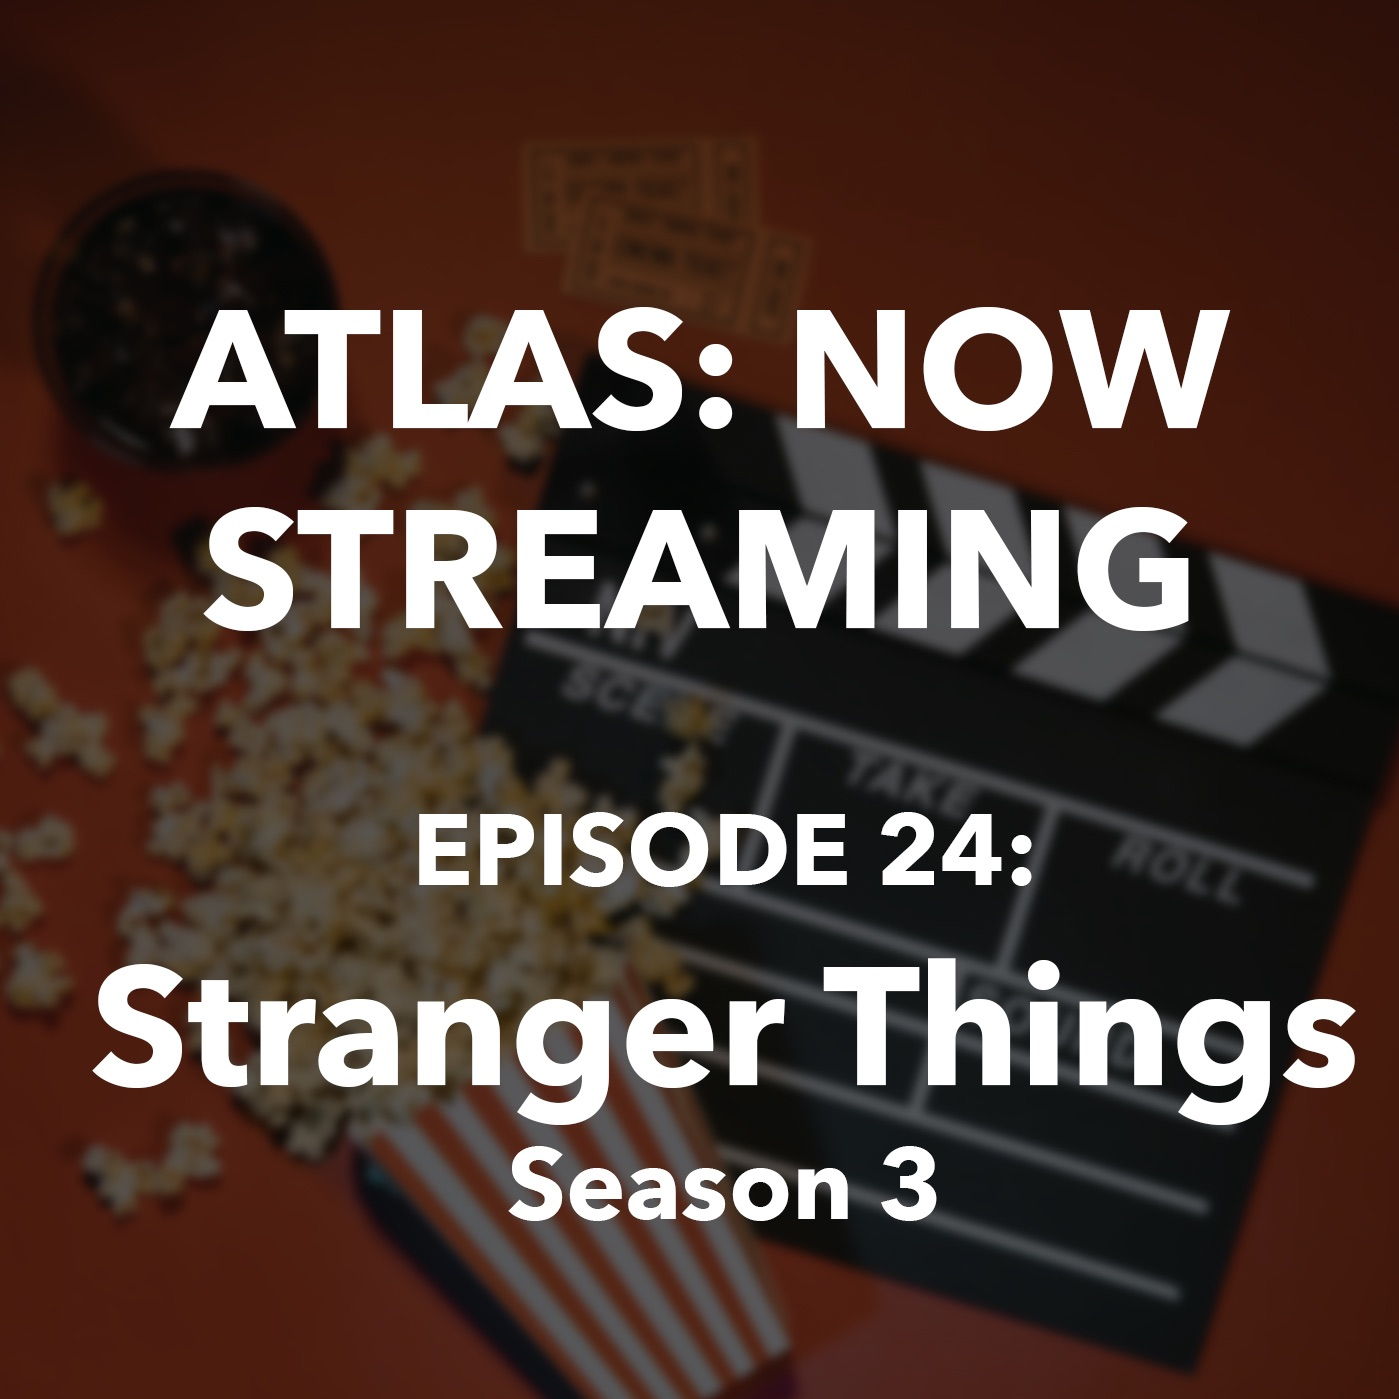 Stranger Things Season 3 - Atlas: Now Streaming Ep 24